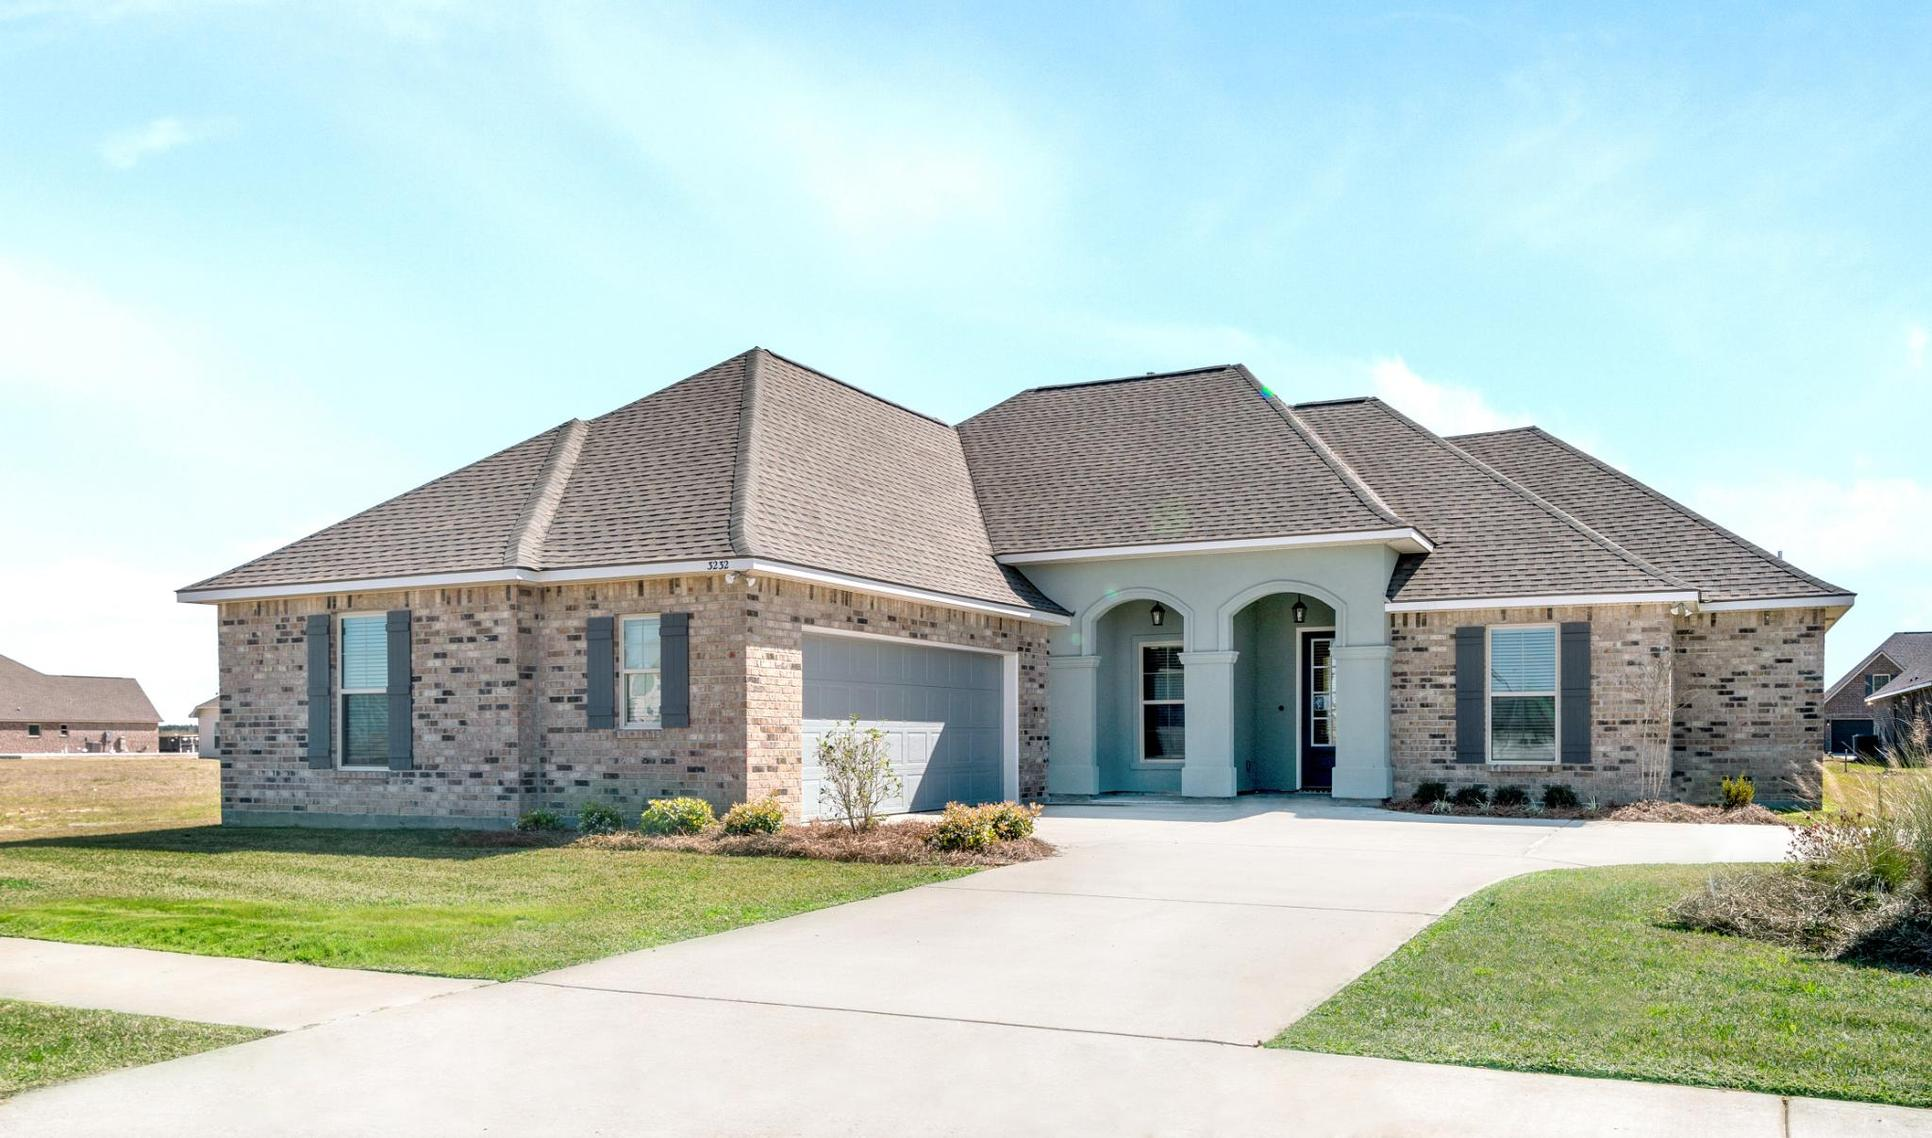 new construction homes in lake charles, la by dsld homes:The Cove at Morganfield - Model Home Exterior